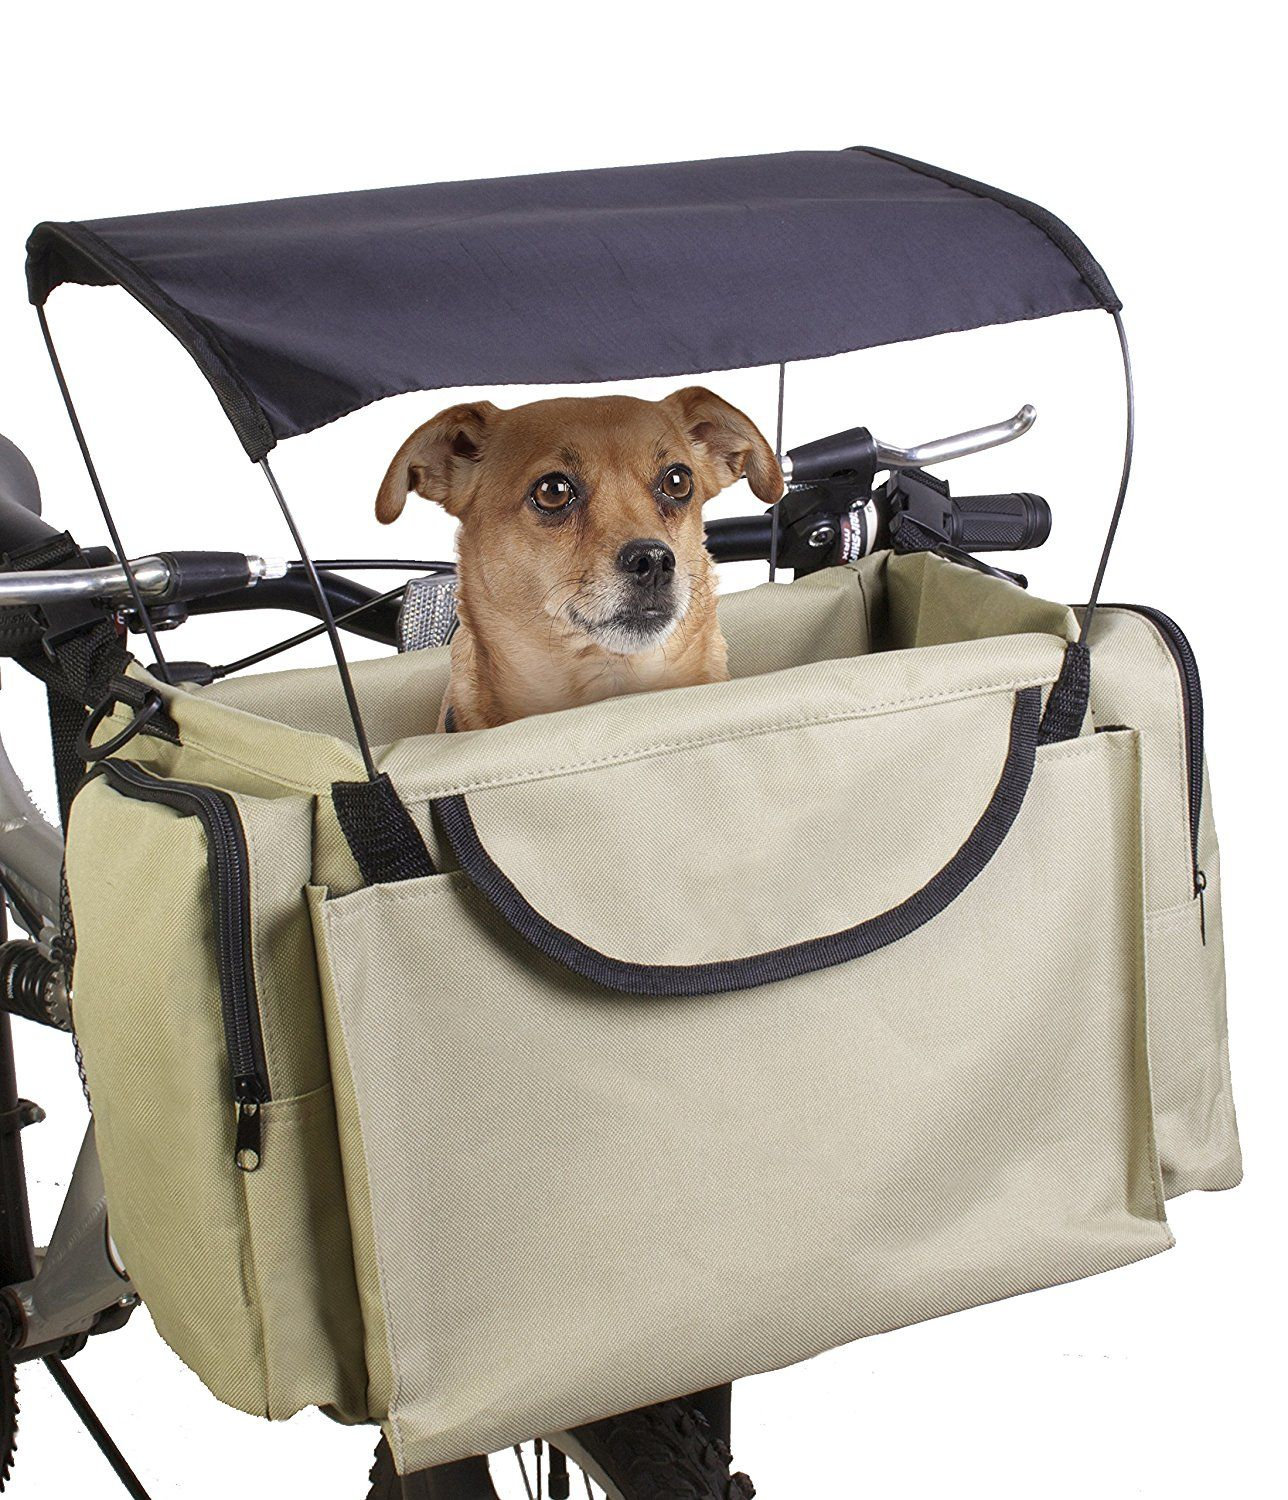 Easy Install Detachable Cycling Bag with Big Side Pockets Pet Carrier//Booster Backpack for Dogs and Cats Dog Bicycle Carriers